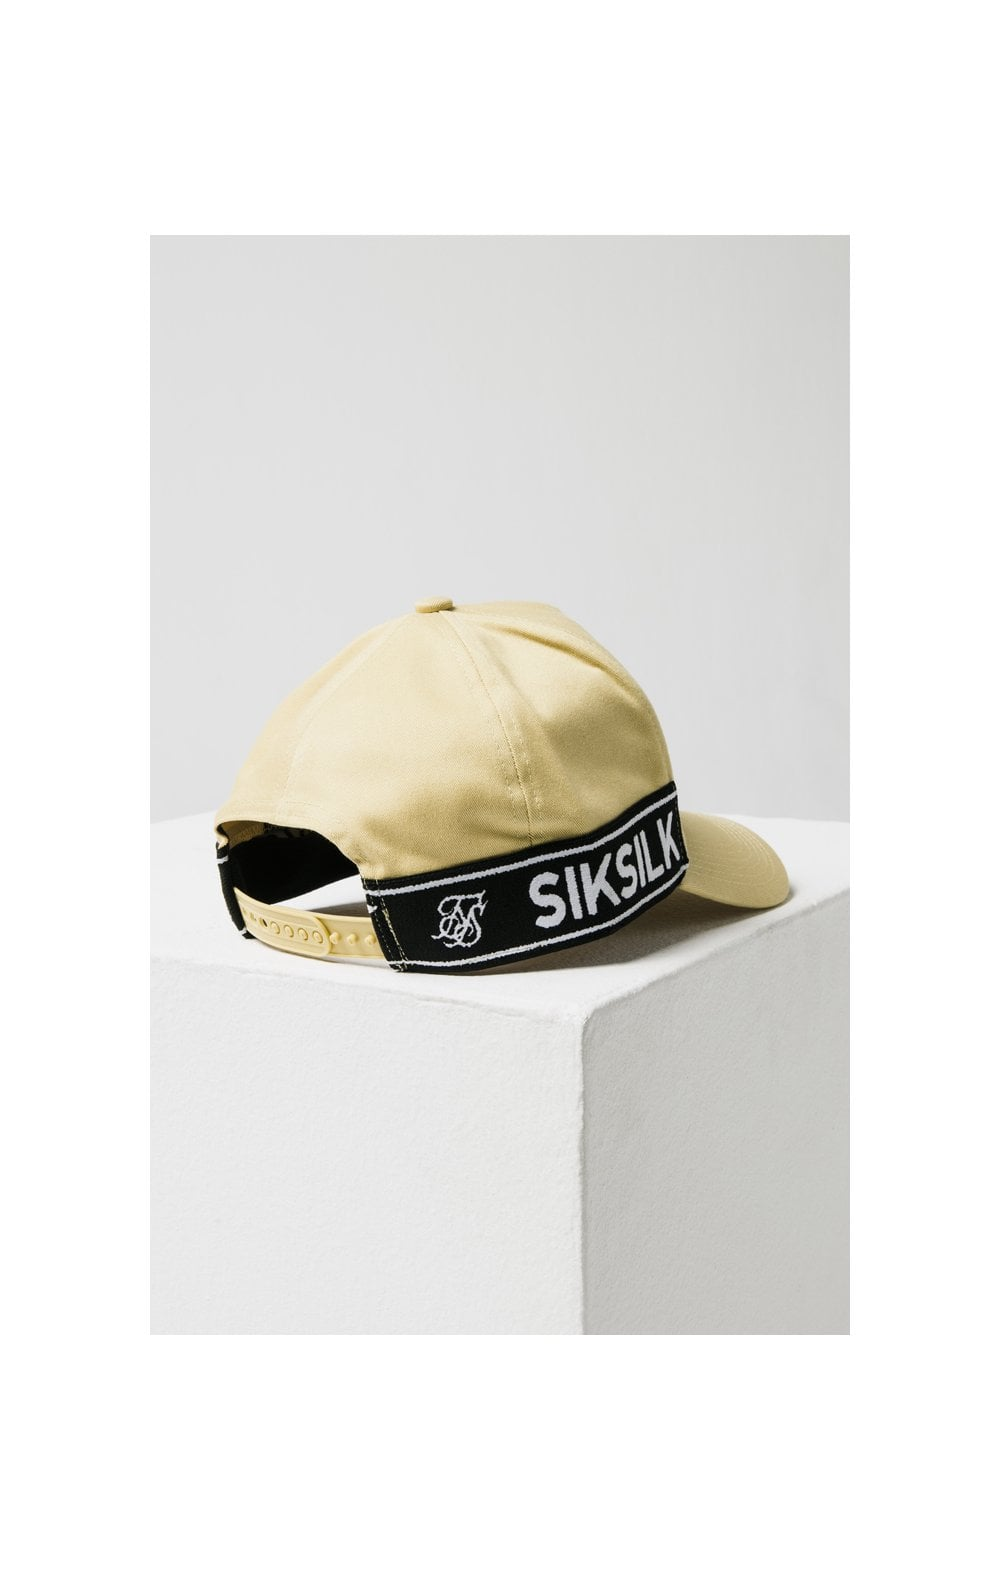 SikSilk Stretch Fit Full Trucker - Mustard (5)